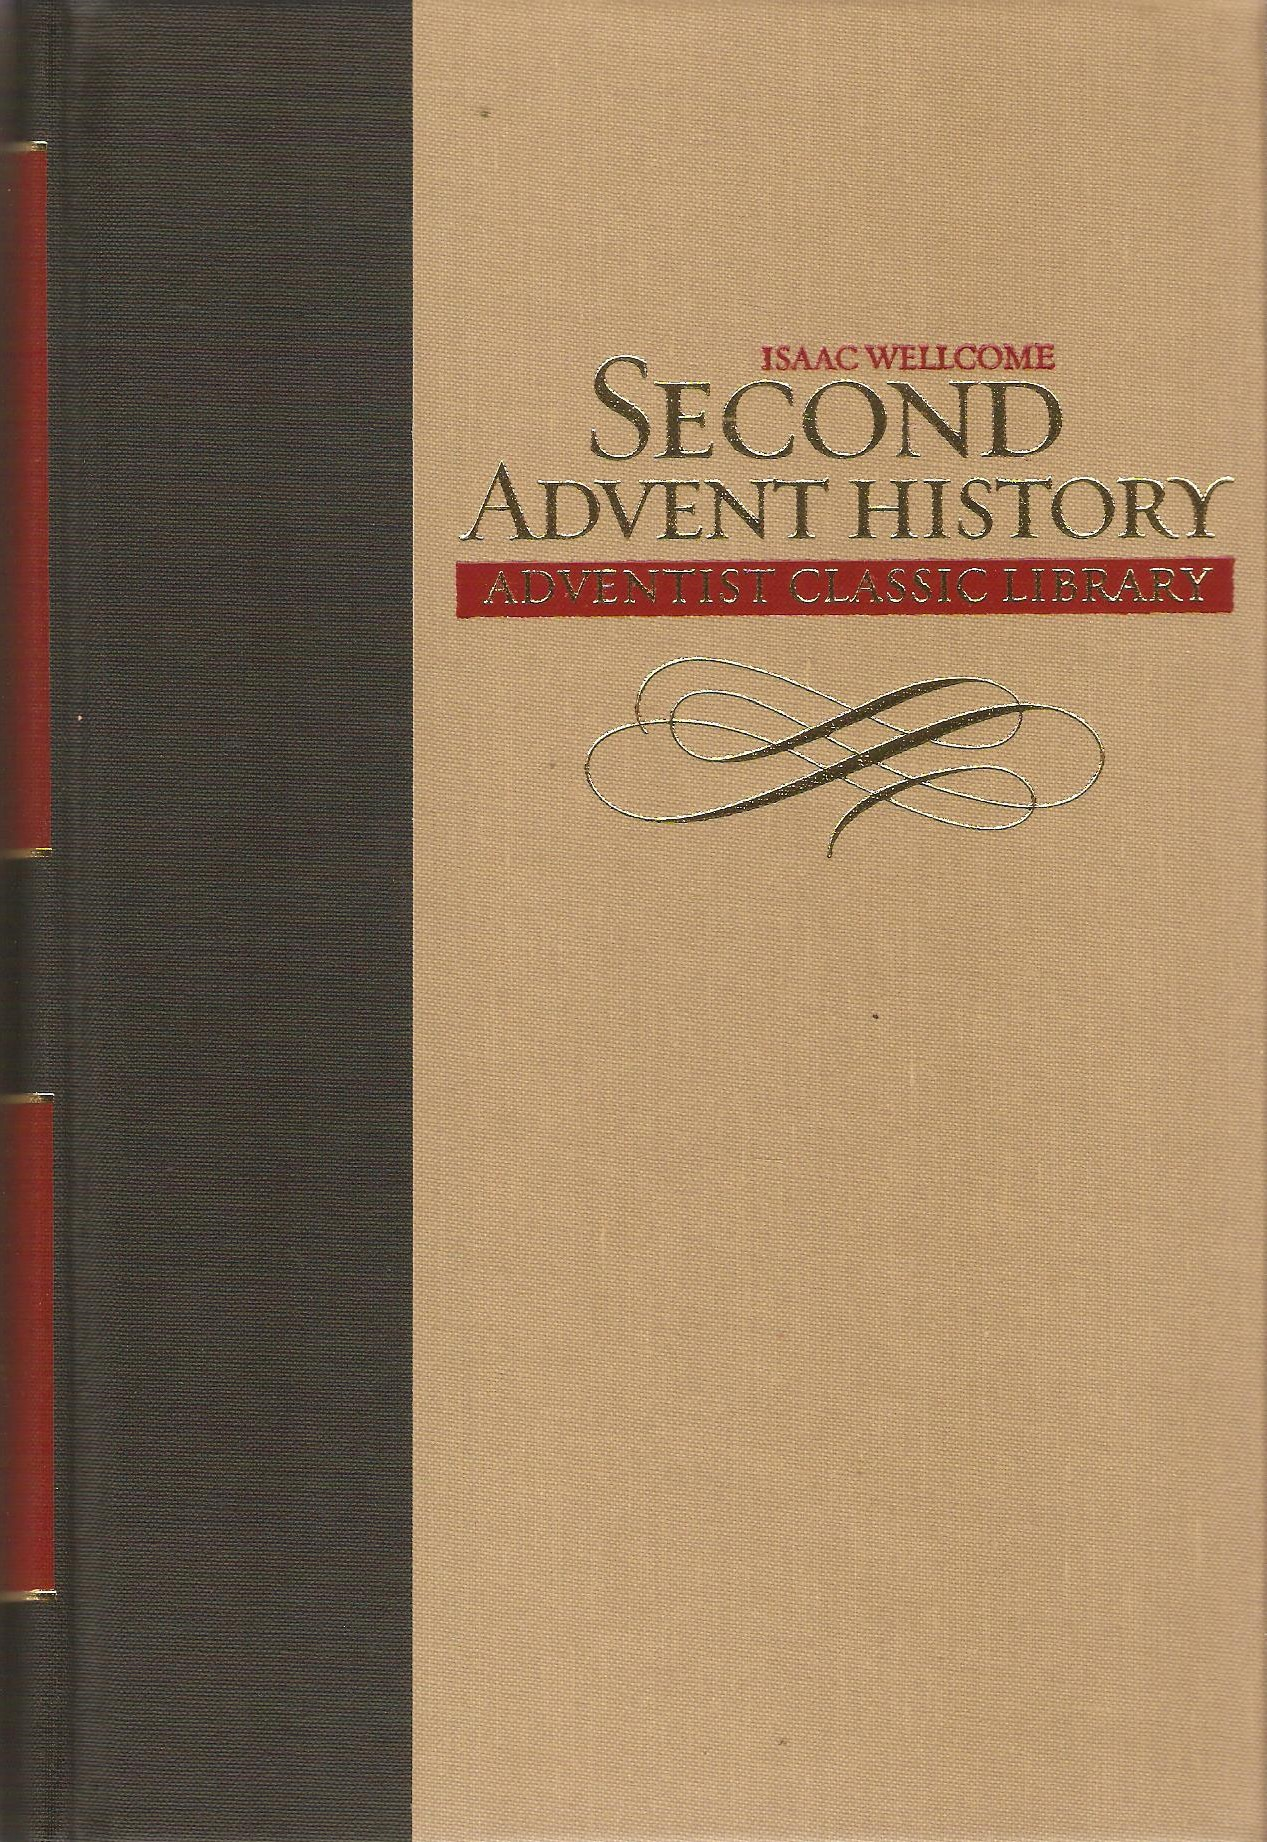 Second Advent History